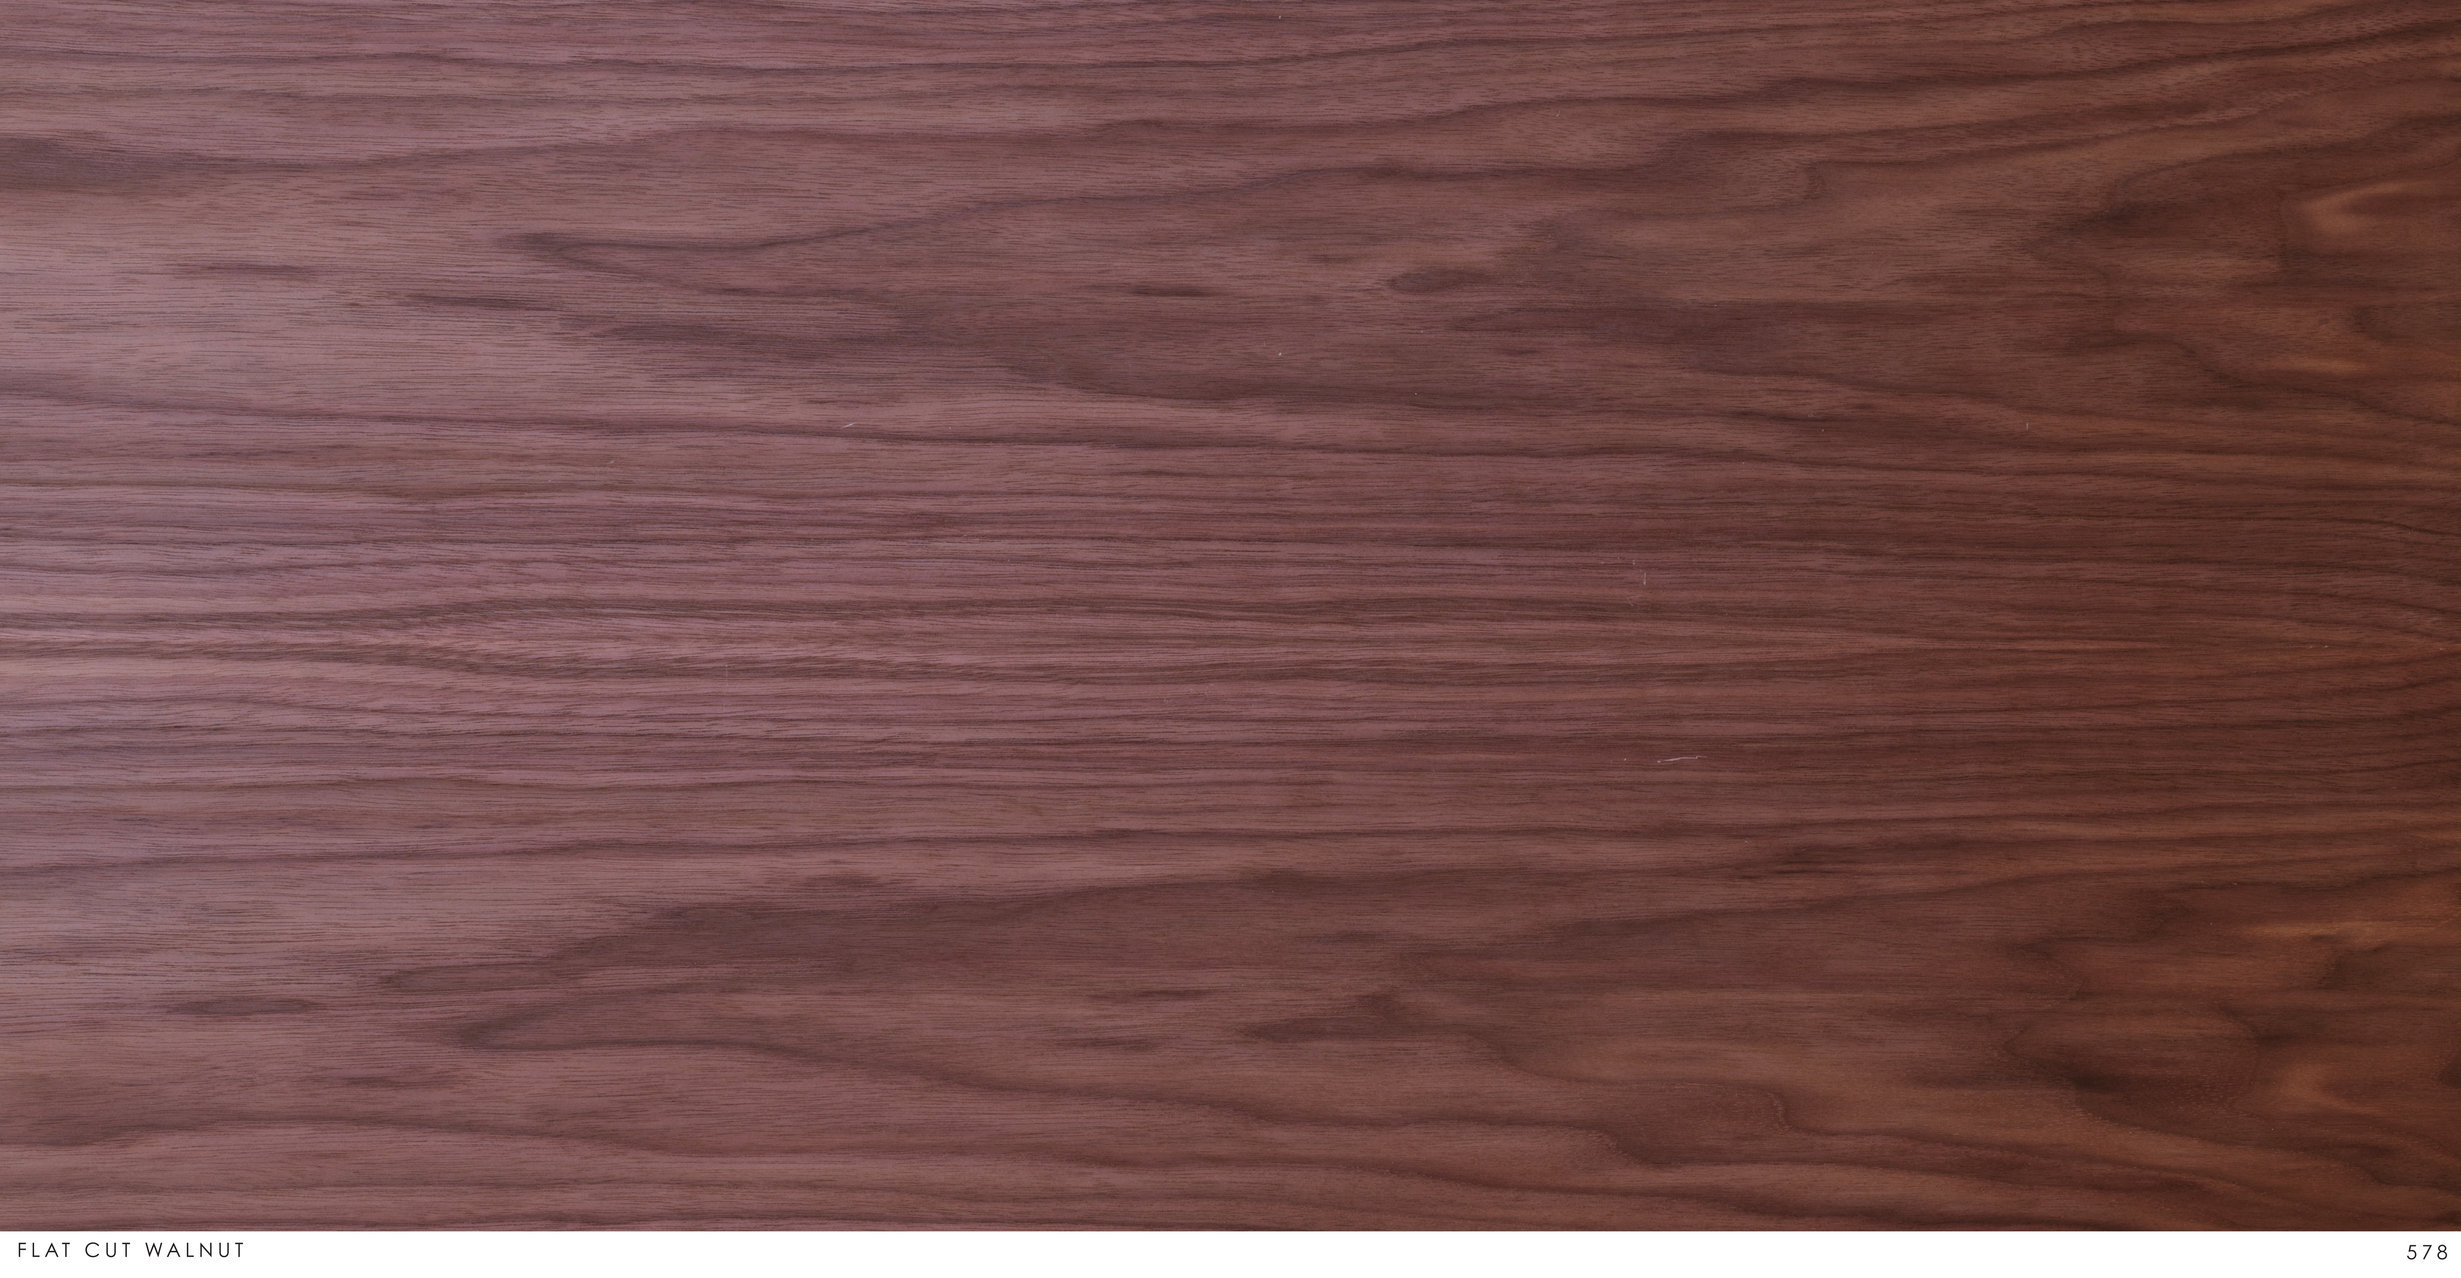 FLAT CUT WALNUT 578.jpg